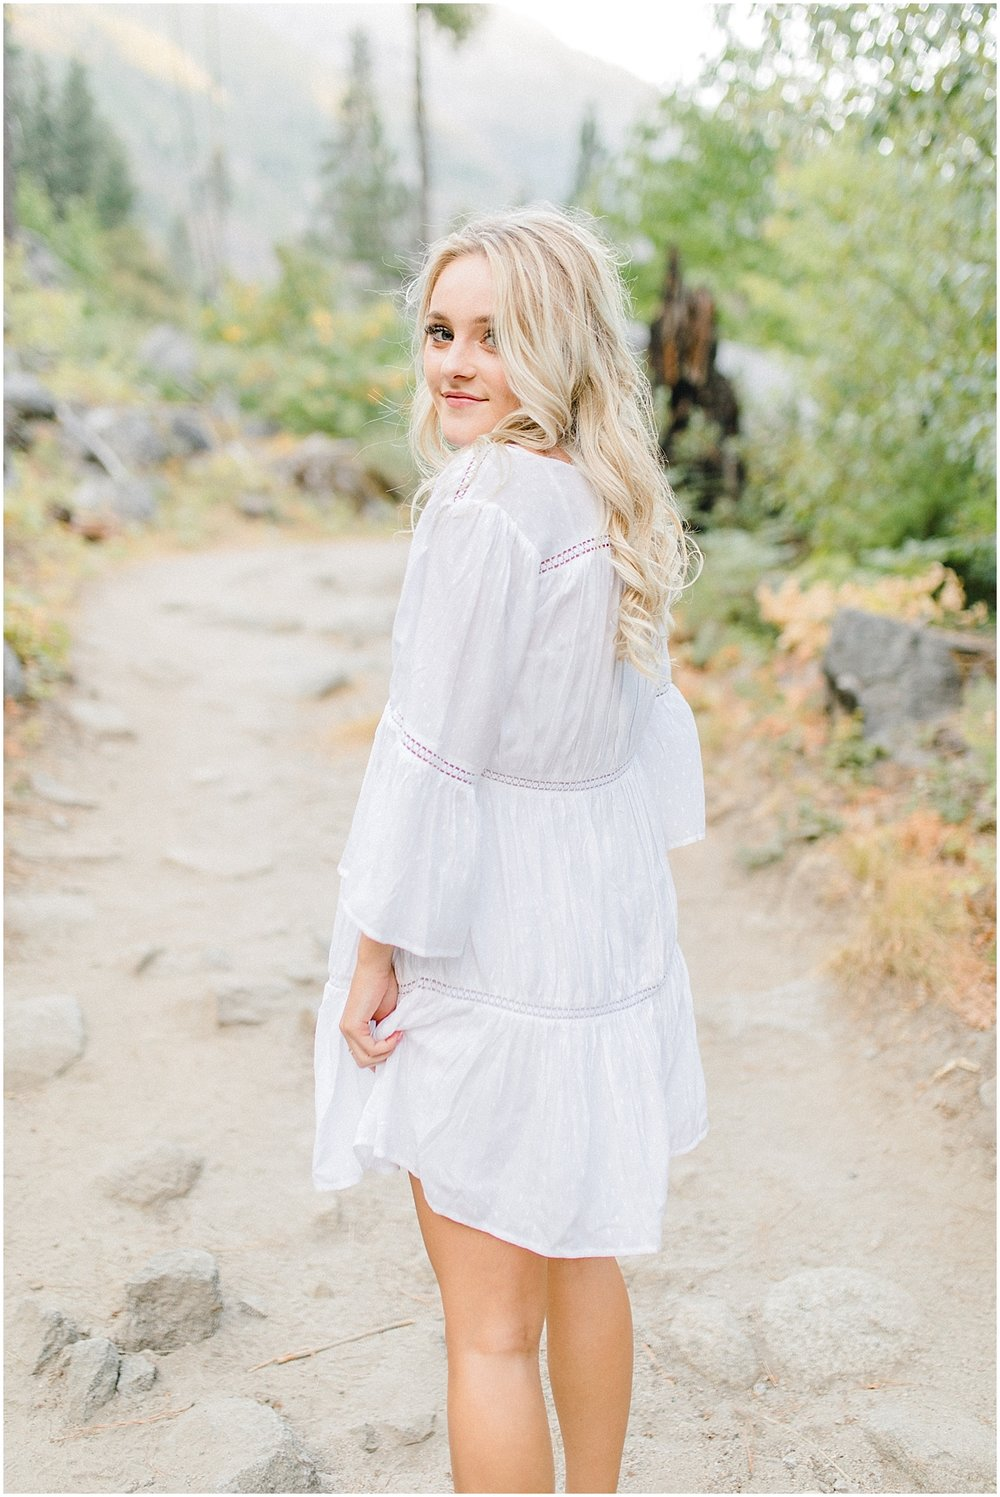 Emma Rose Company | Pacific Northwest Senior Portrait Photographer | Light and Airy Styled Senior Portraits | What to Wear to Senior Pictures | Kindred Presets | Seattle, Wenatchee and Portland Wedding and Portrait Photographer | Emma Rose13.jpg